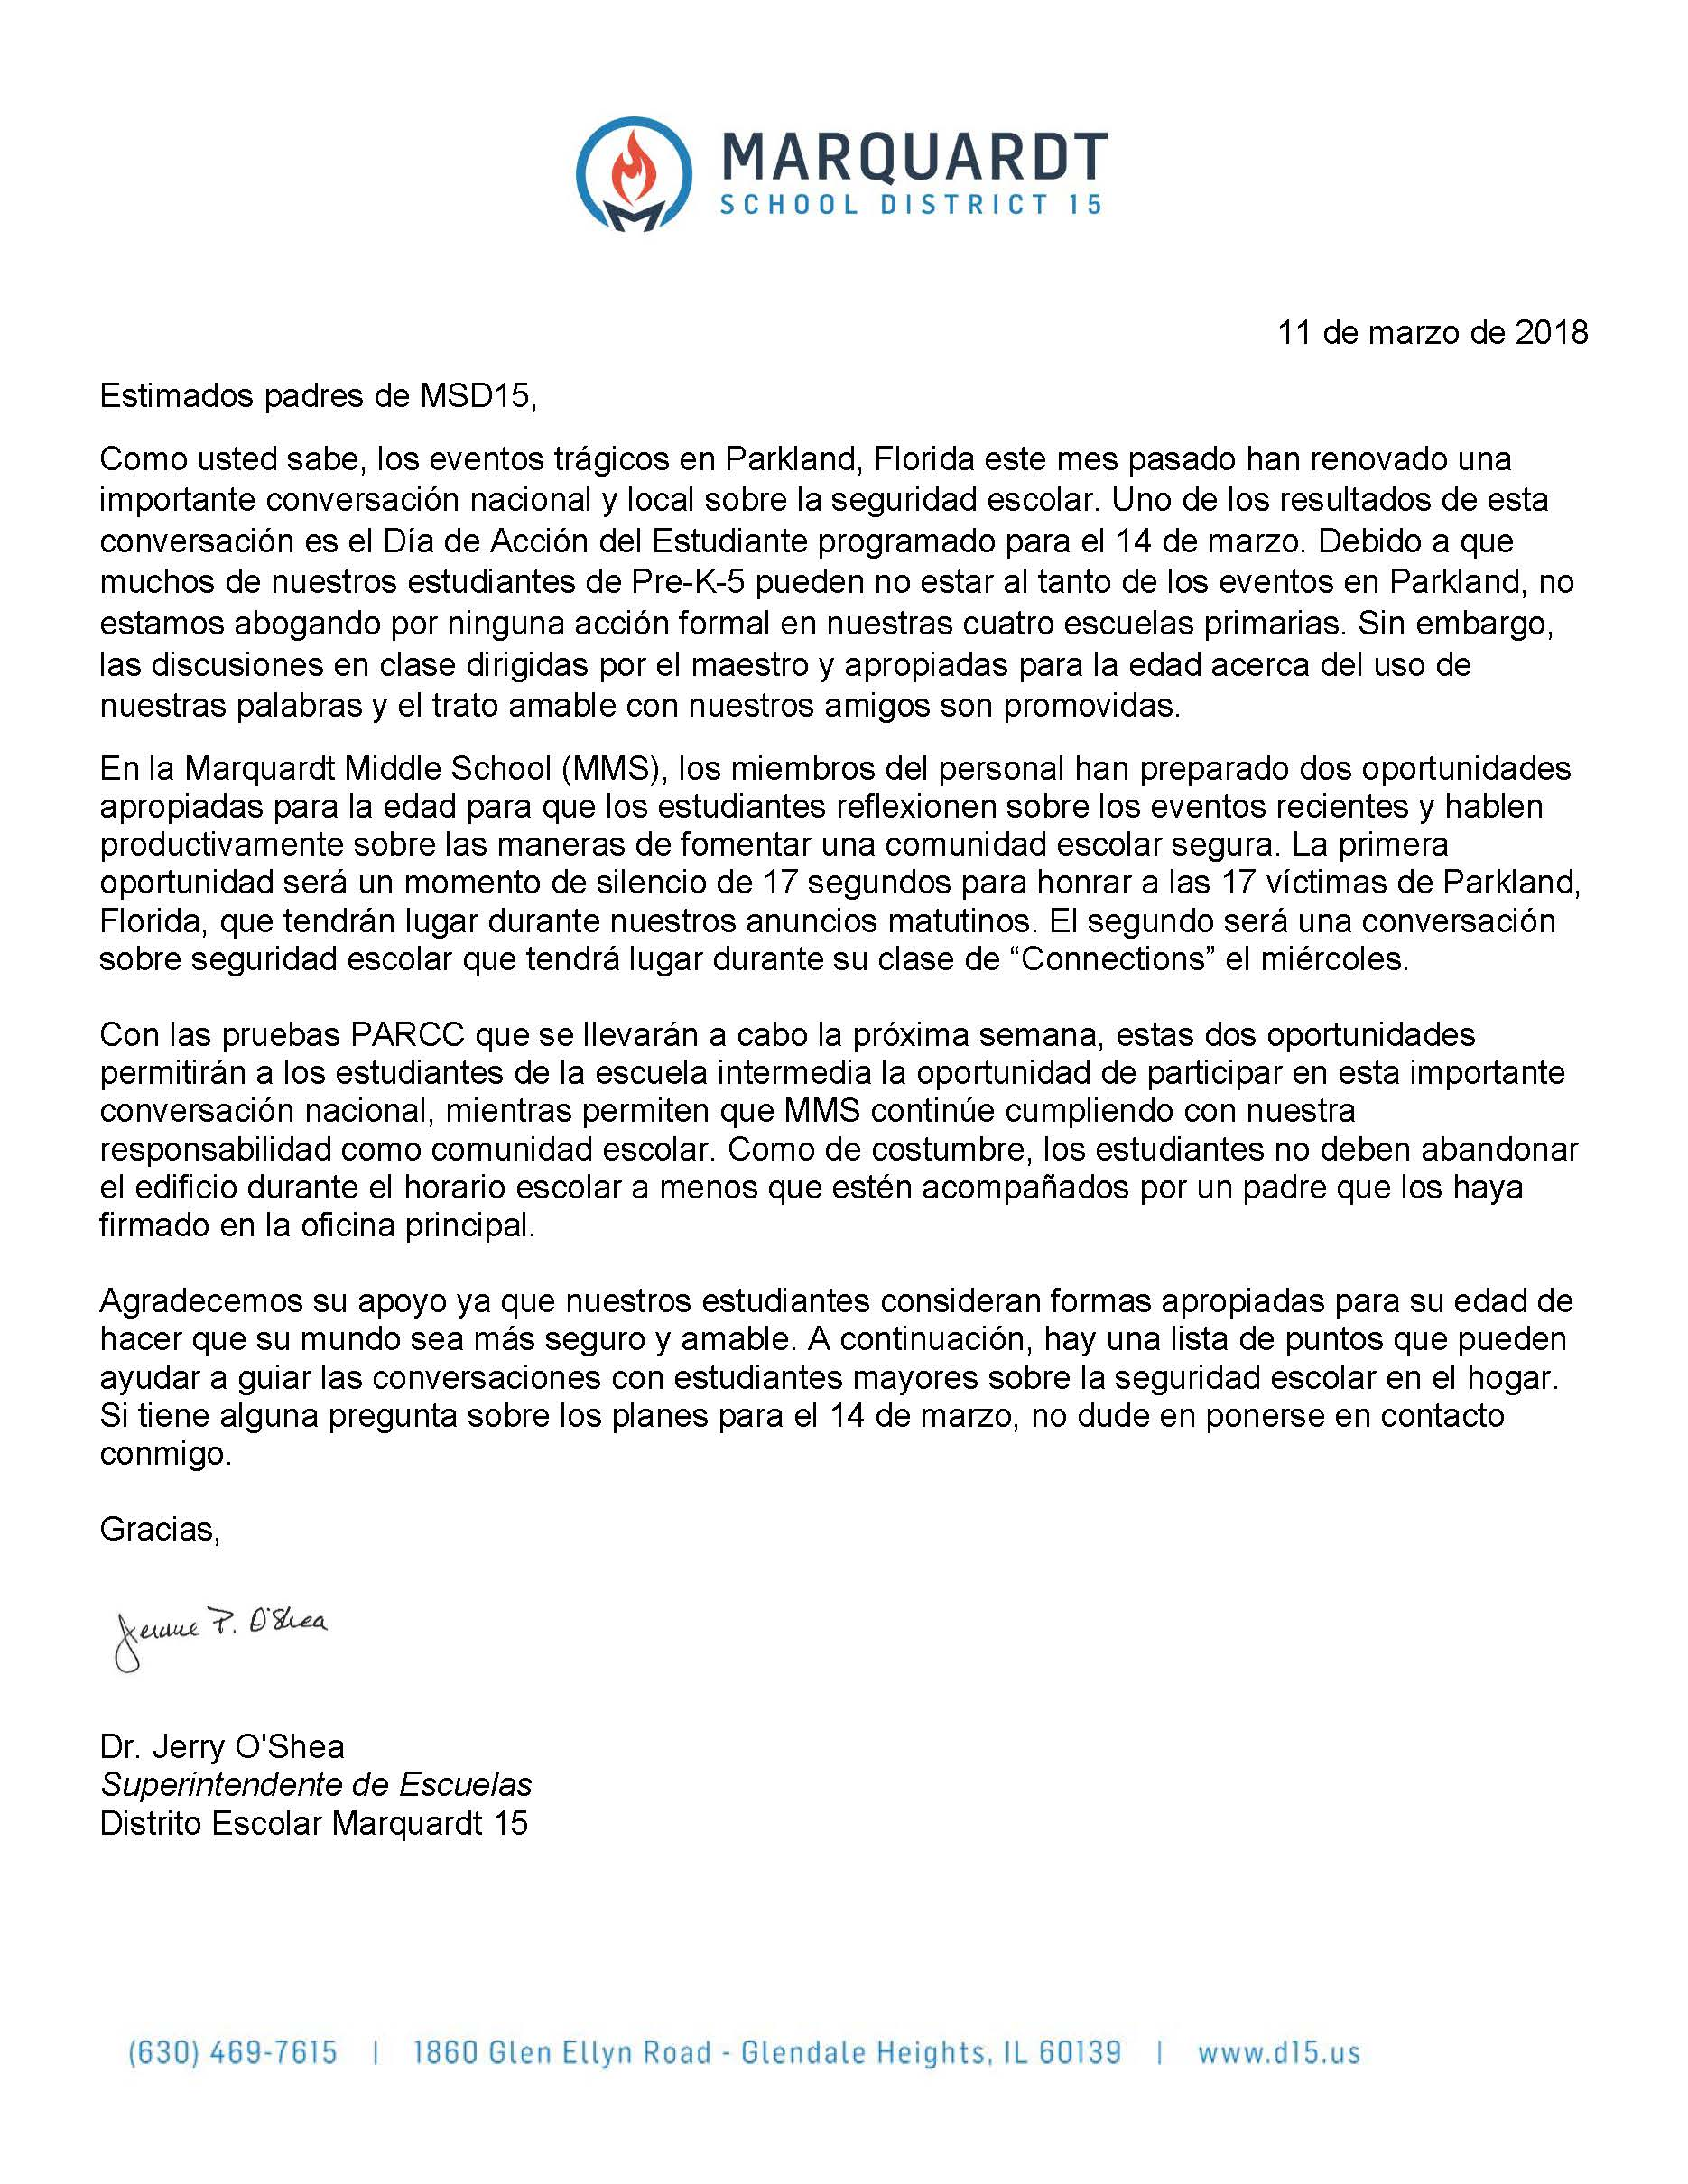 MSD15 Parent Letter_March 14 Day of Action_Spanish_Page_1.jpg